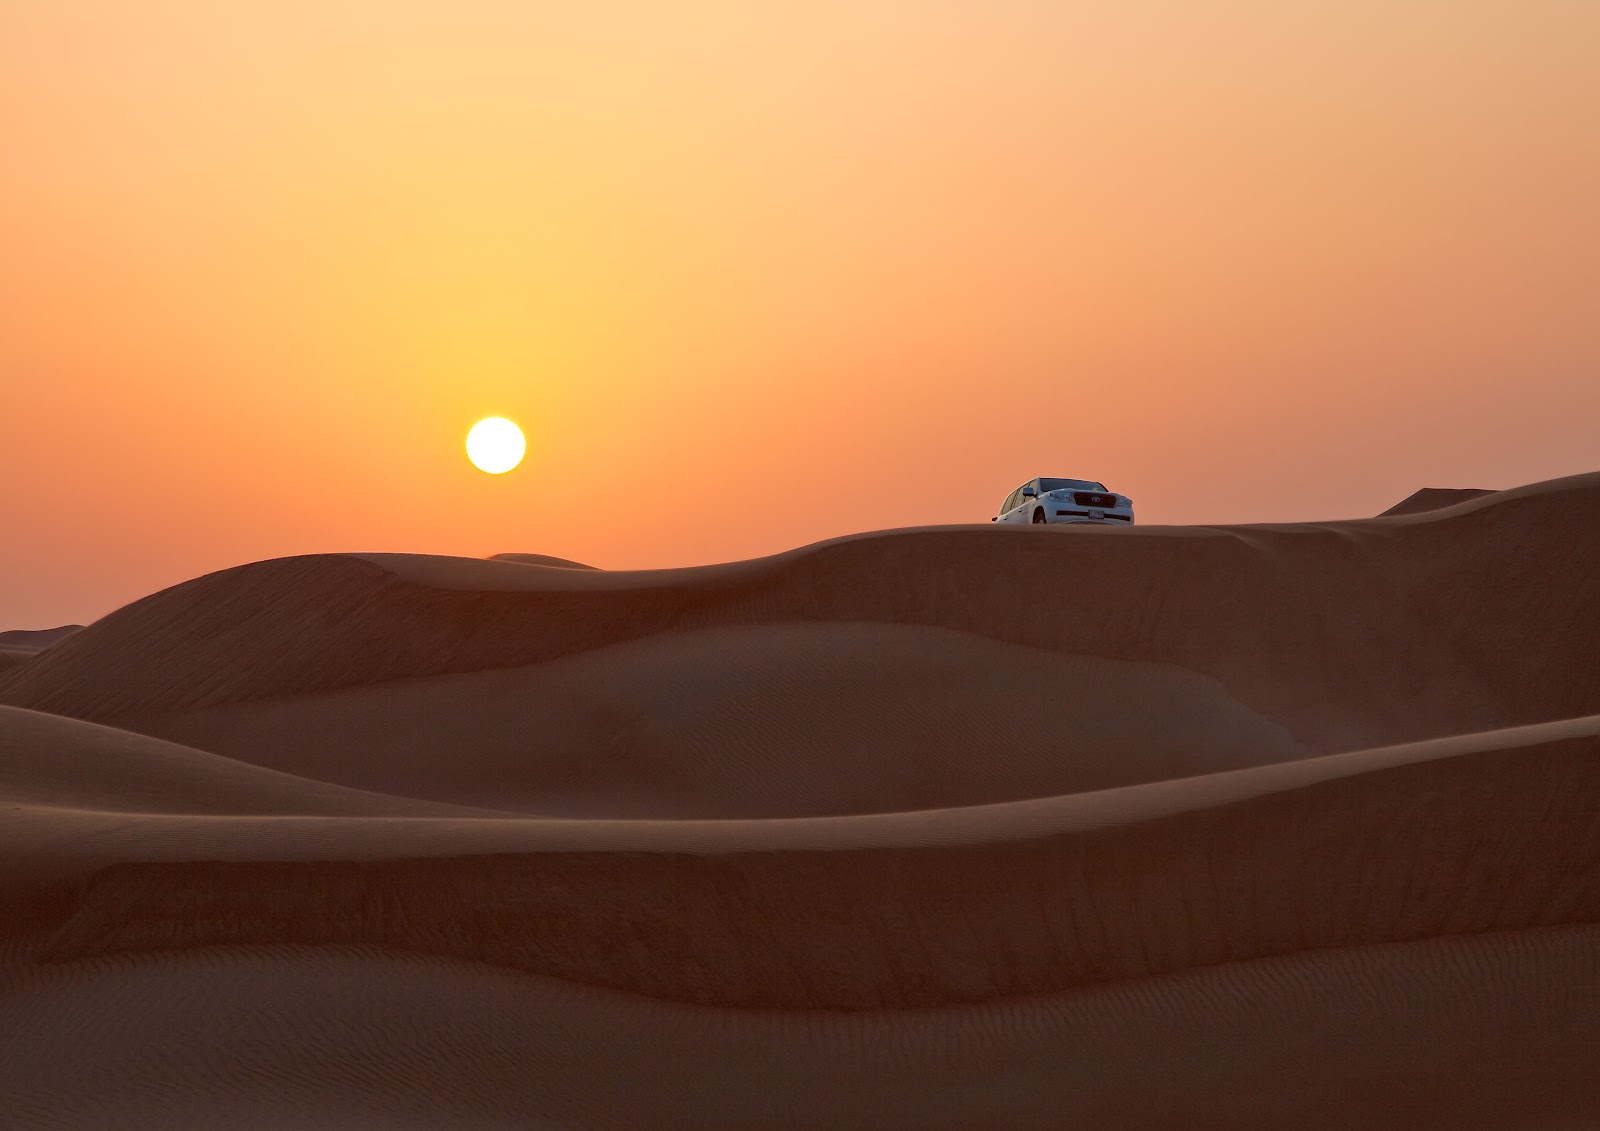 Desert_Sunset_3_by_Stuartf